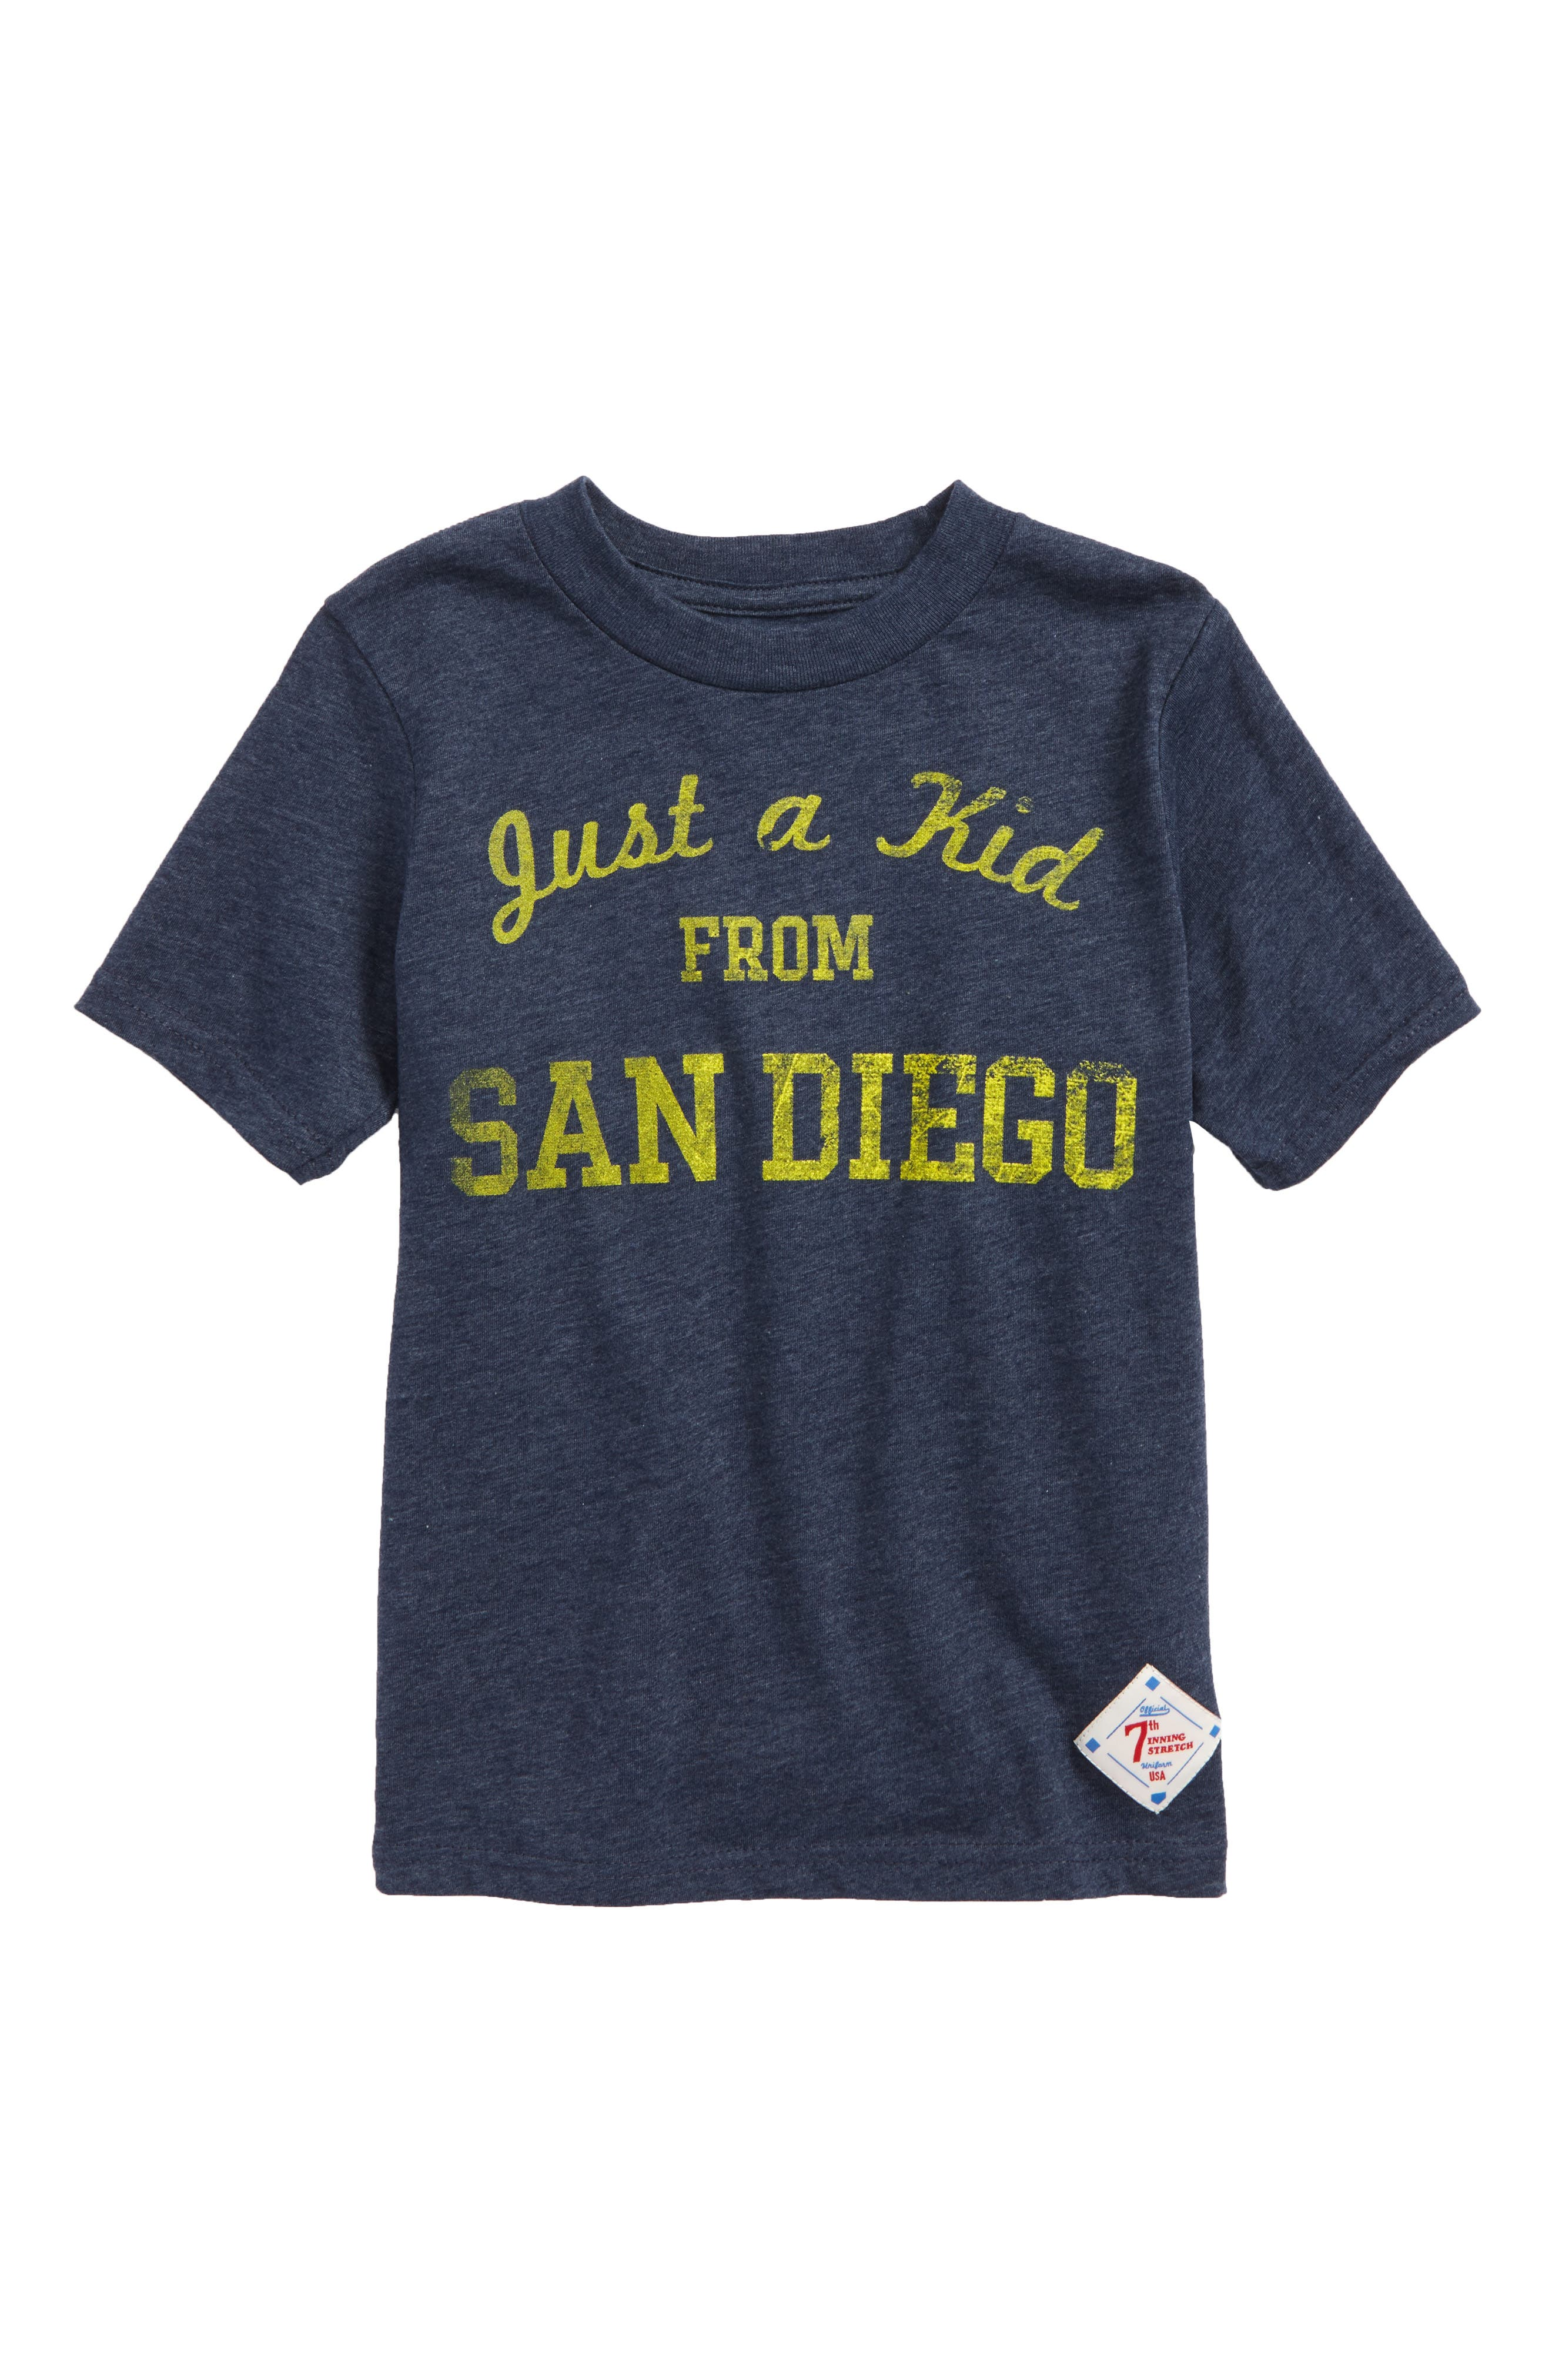 Just a Kid from San Diego Graphic T-Shirt,                             Main thumbnail 1, color,